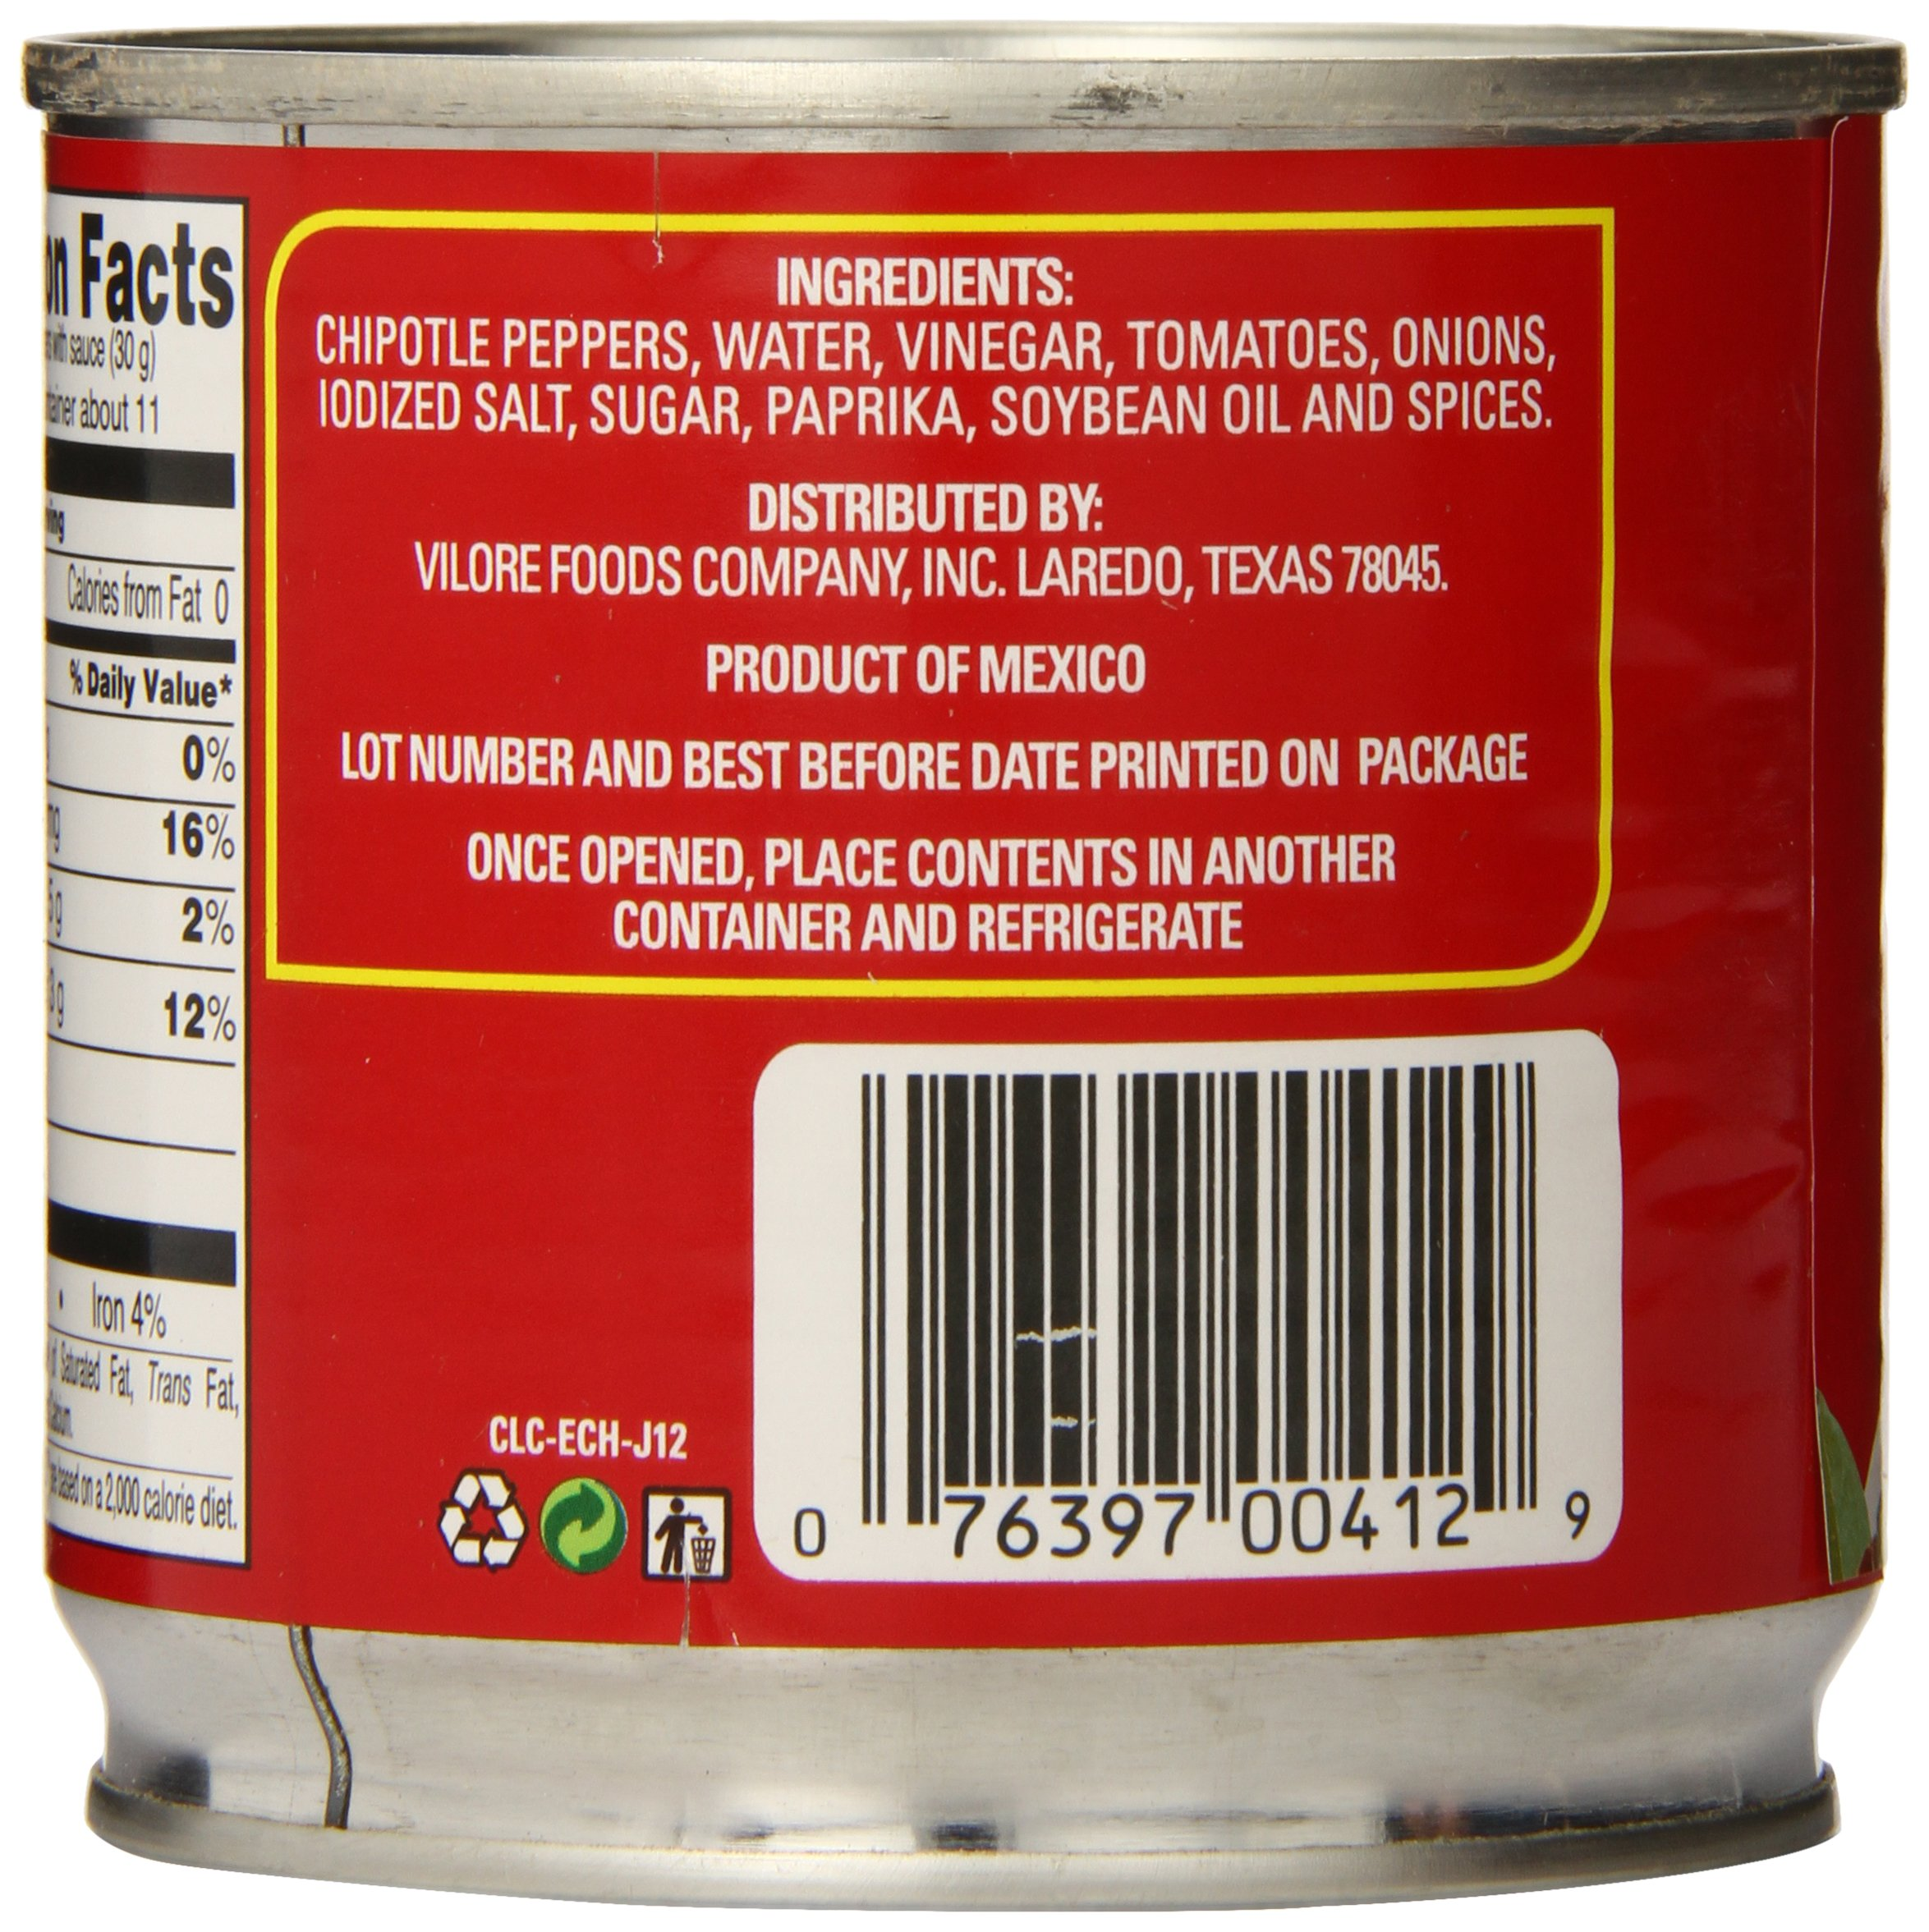 La Costena Chipotle Peppers, 12 Ounce (Pack of 12) by LA COSTENA (Image #5)